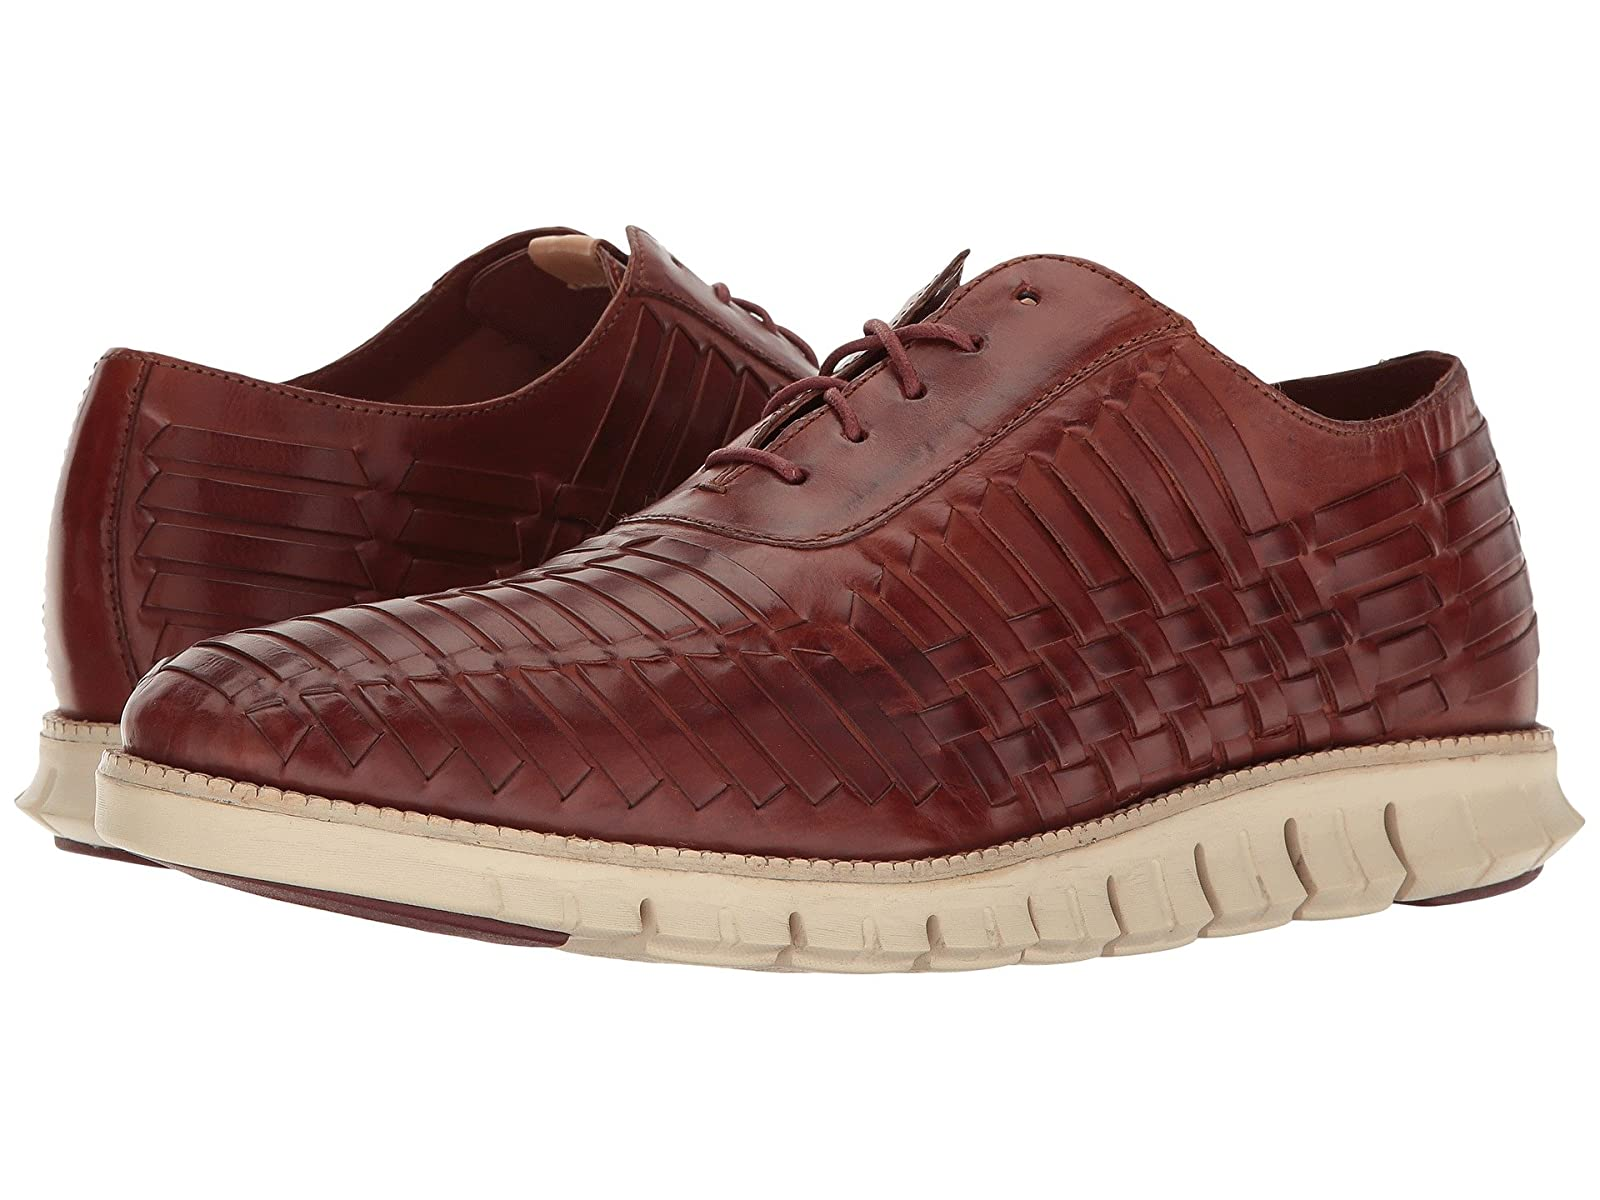 Cole Haan Zerogrand Huarache OxfordCheap and distinctive eye-catching shoes